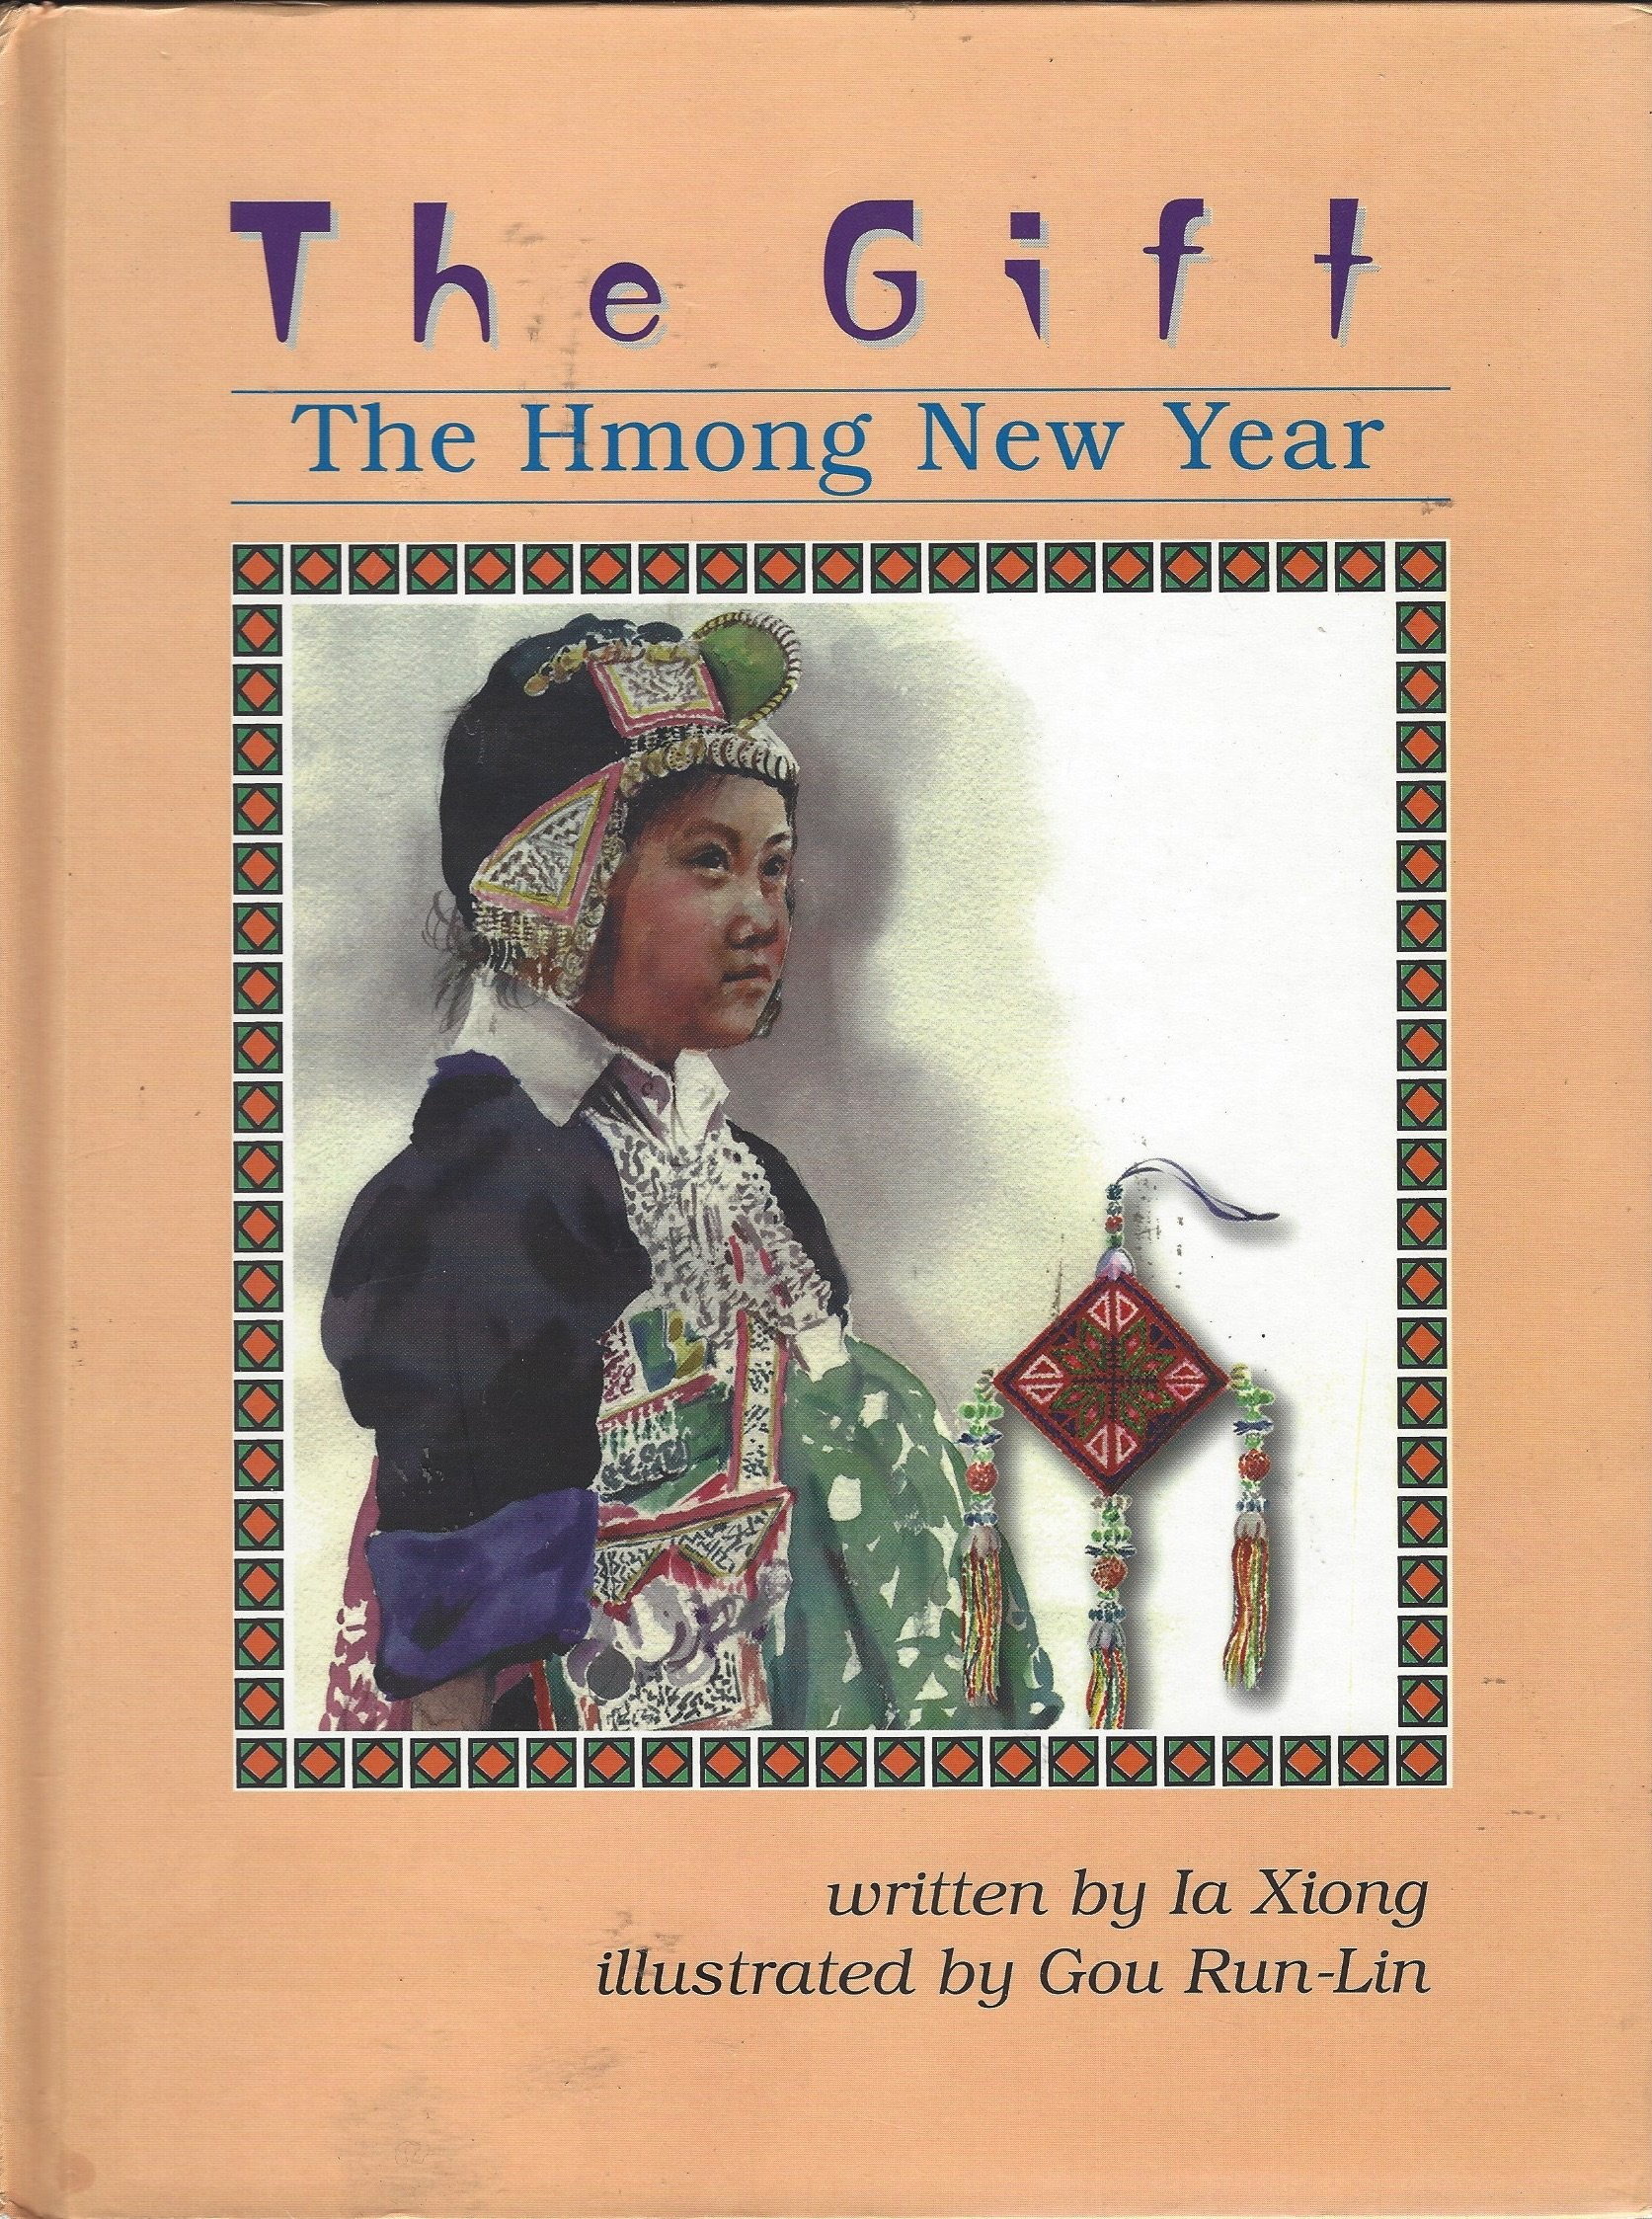 Gift Hmong New Year